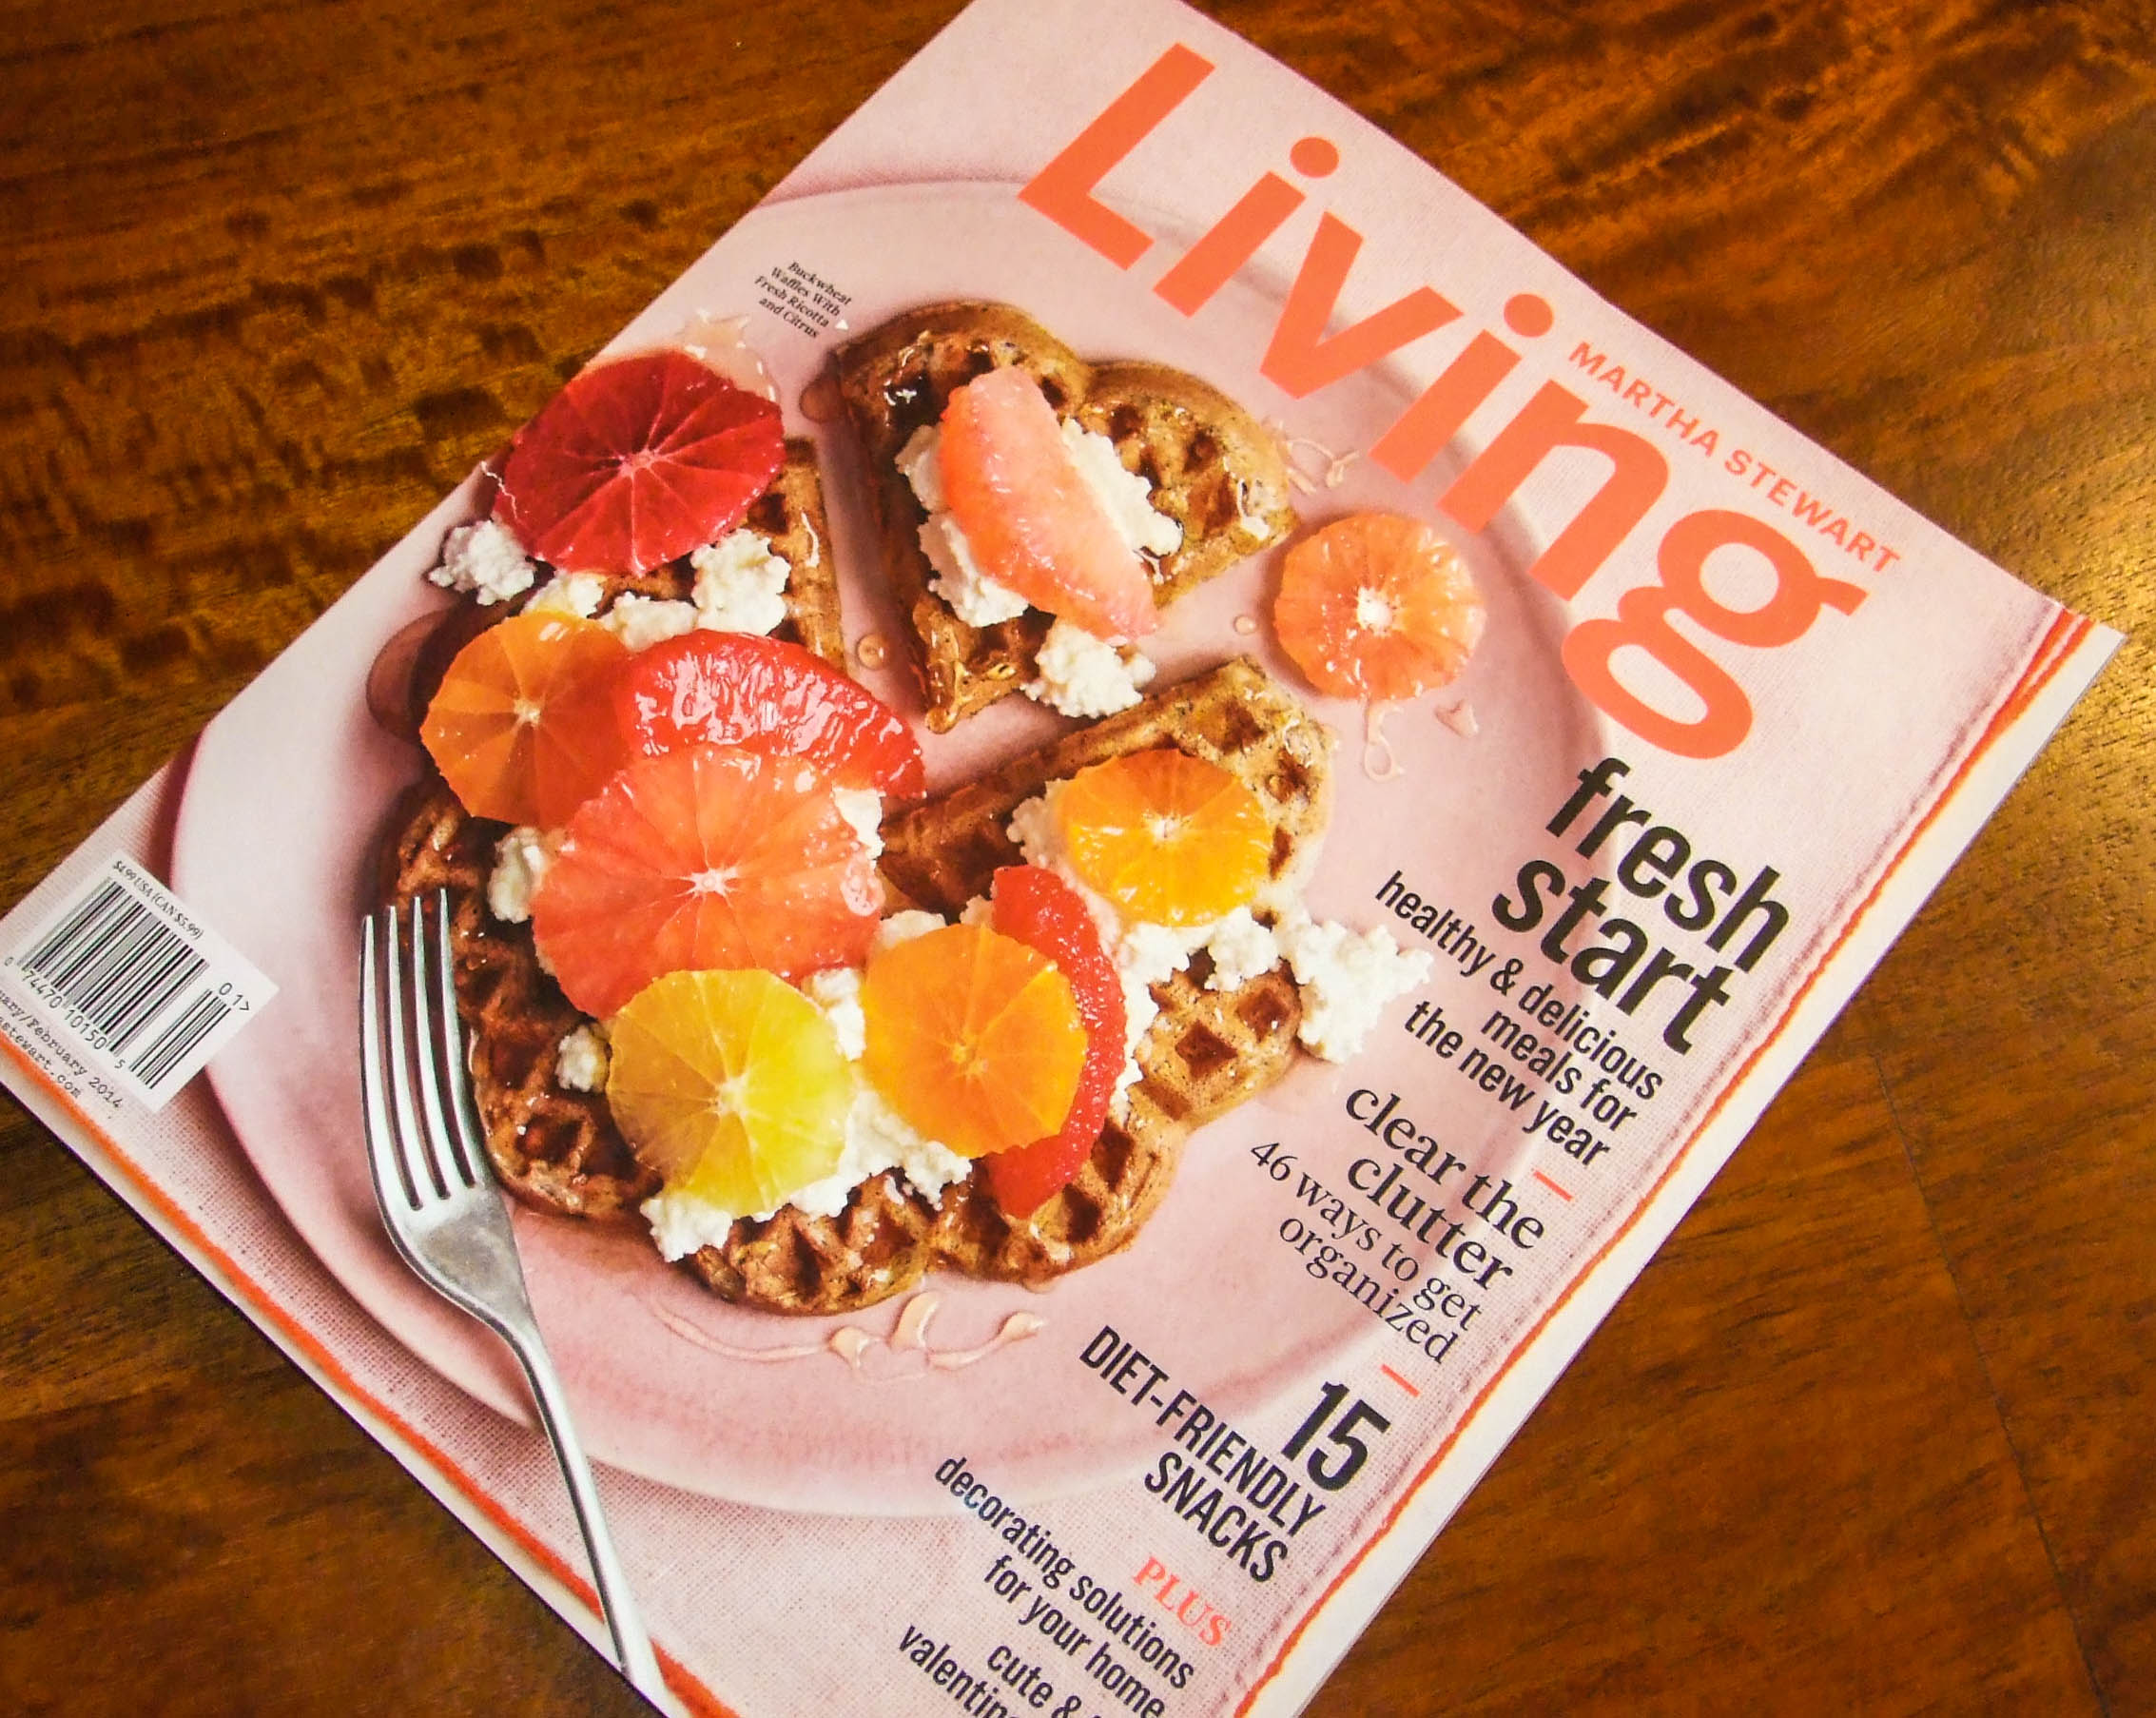 Martha Stewart's Living January | February 2014 Issue